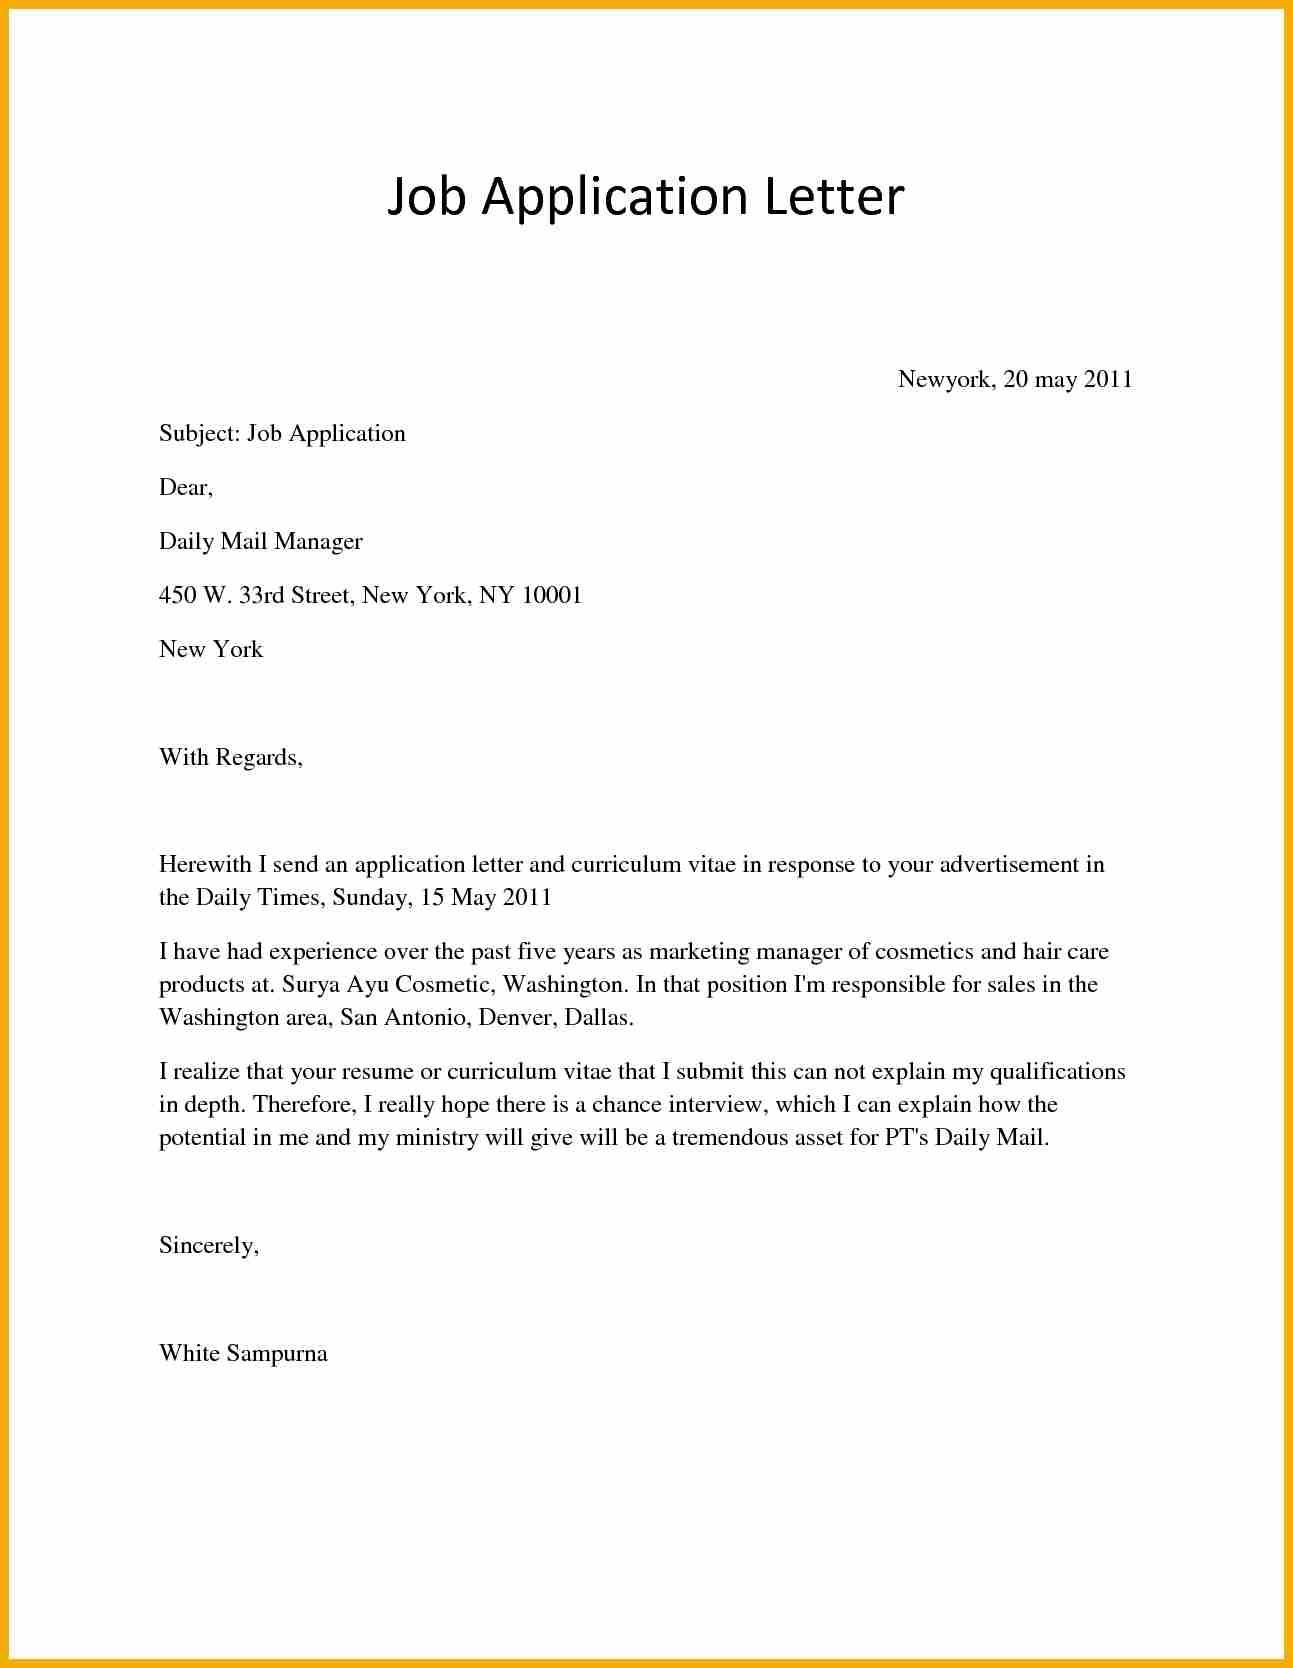 Application Letter For Job Vacancy Bursary Cover Example Any in Application Letter For Job Vacancy Format 23256